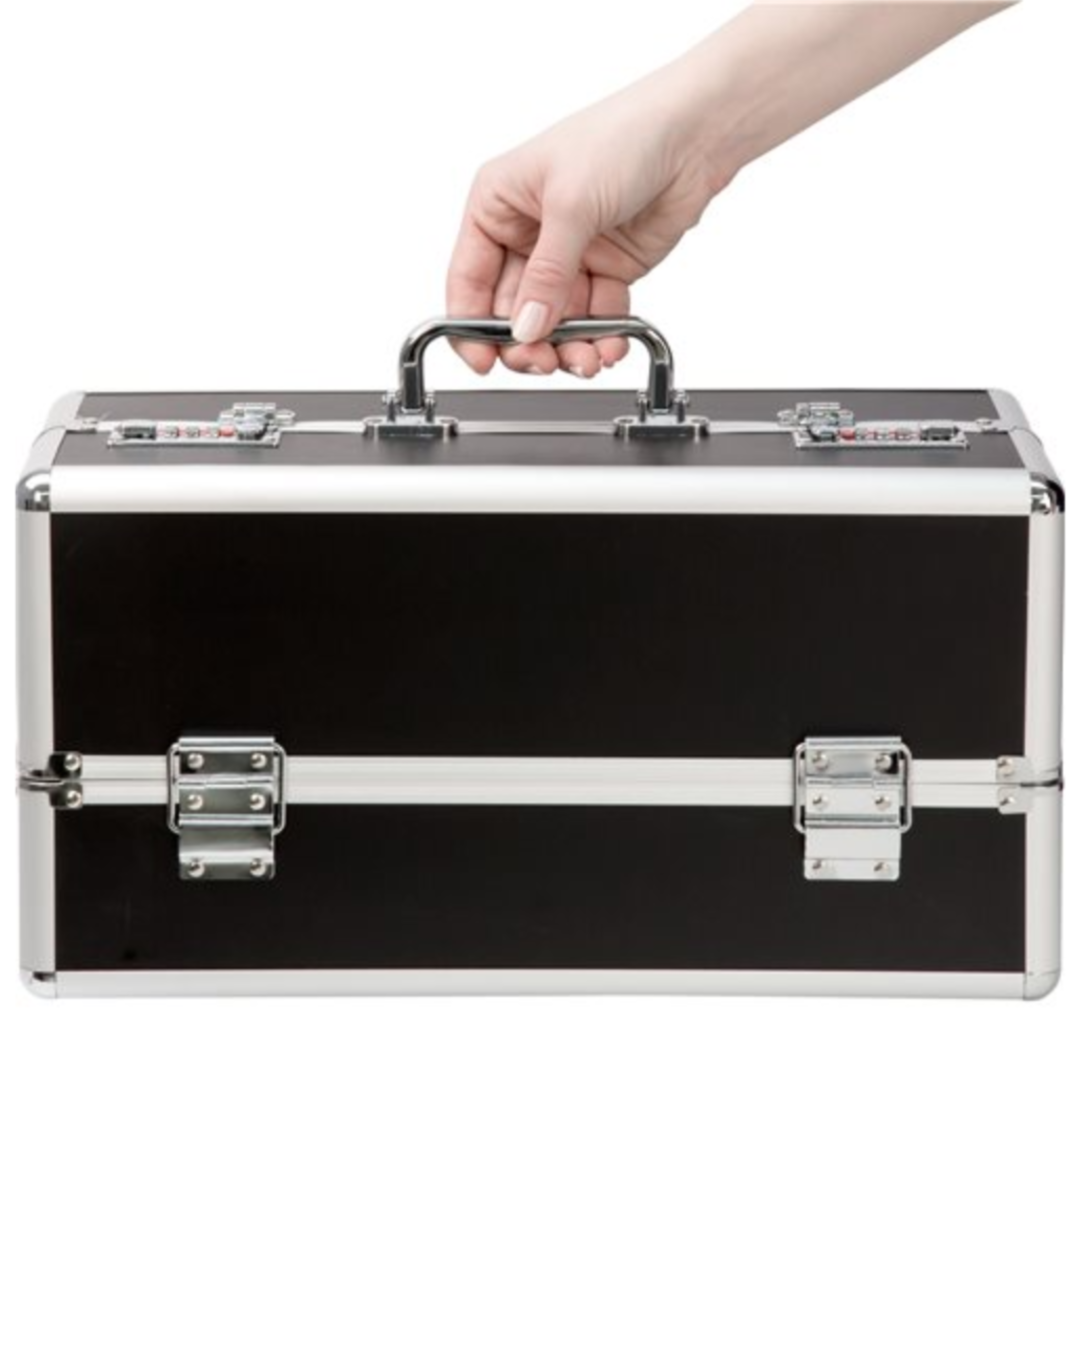 Lockable Sex Toy Storage Case Large Double Tiered - Black with a hand on the handle